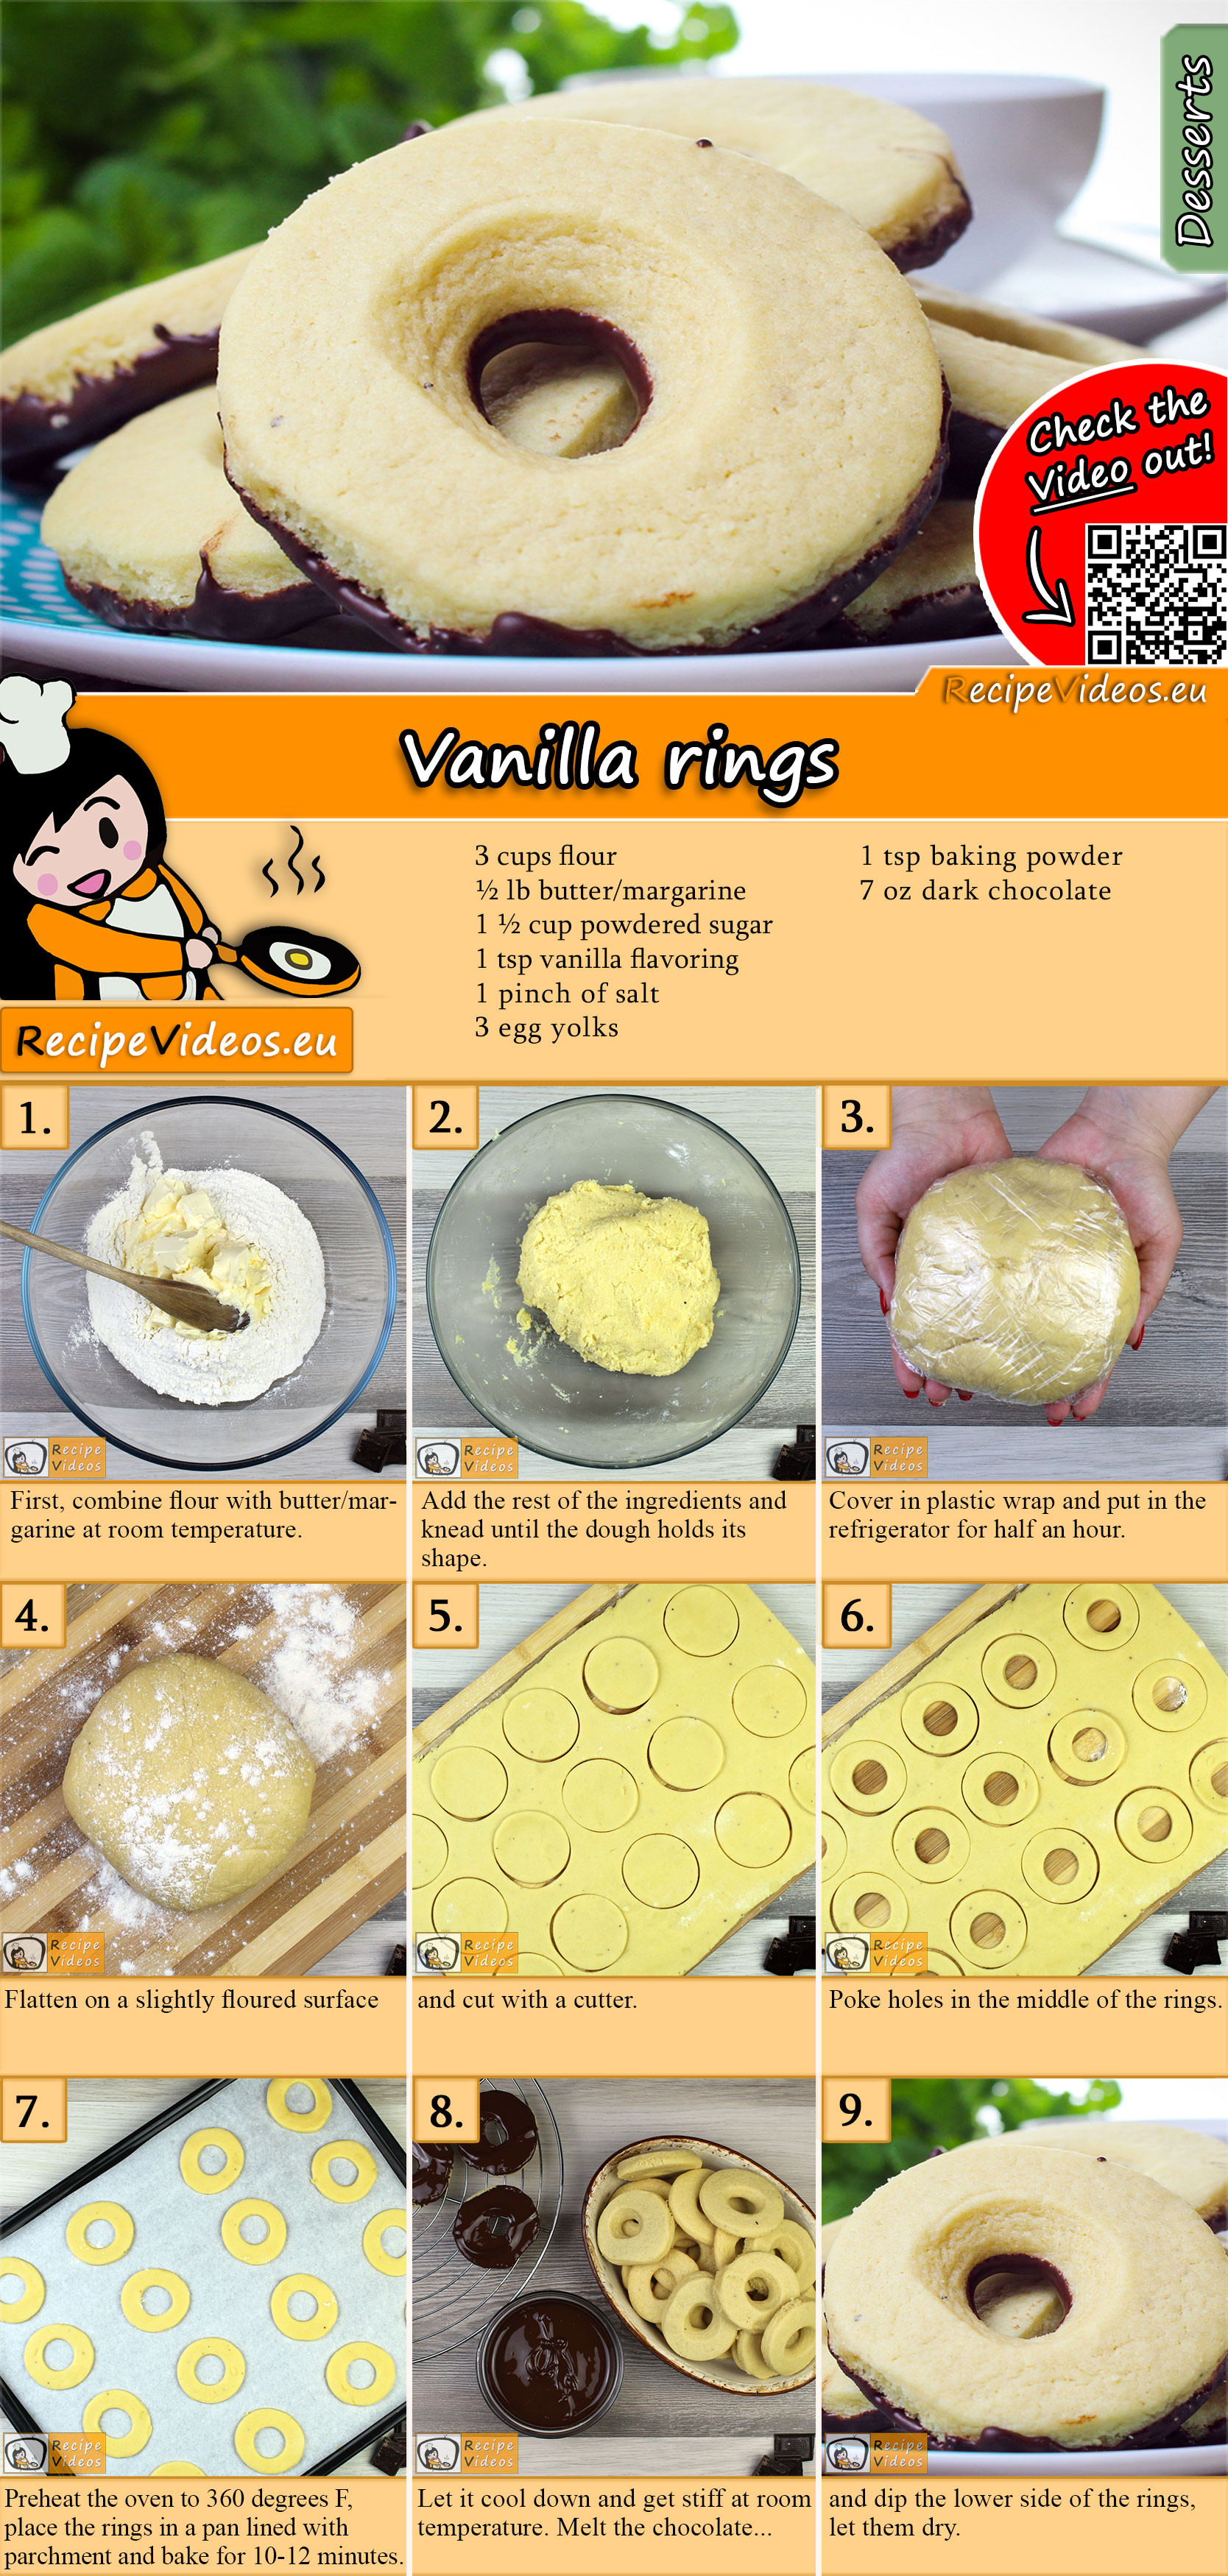 Vanilla rings recipe with video